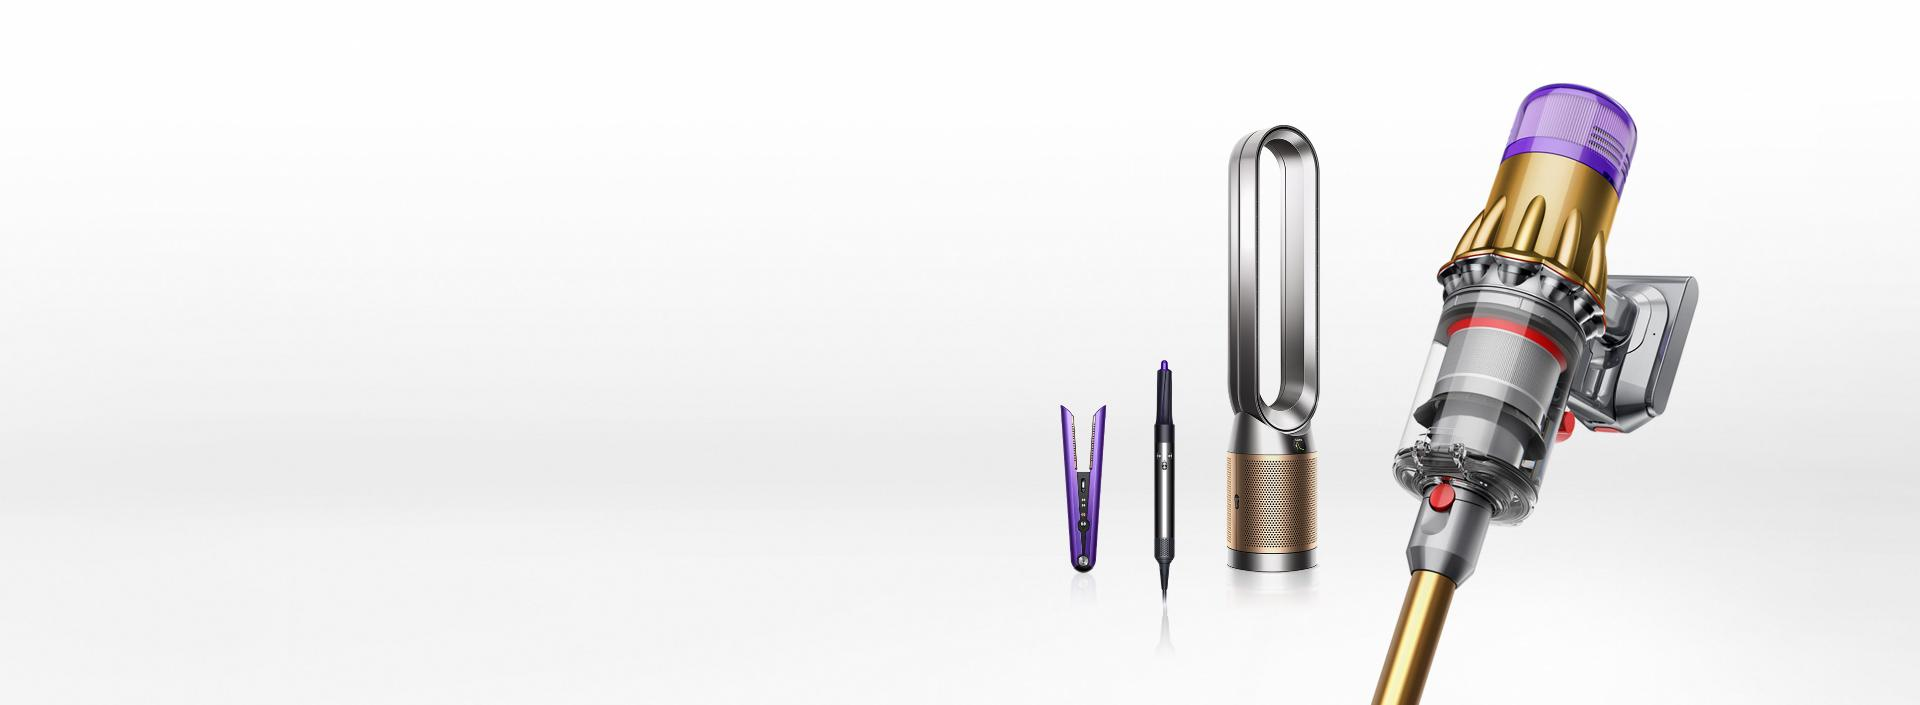 Range of Dyson products